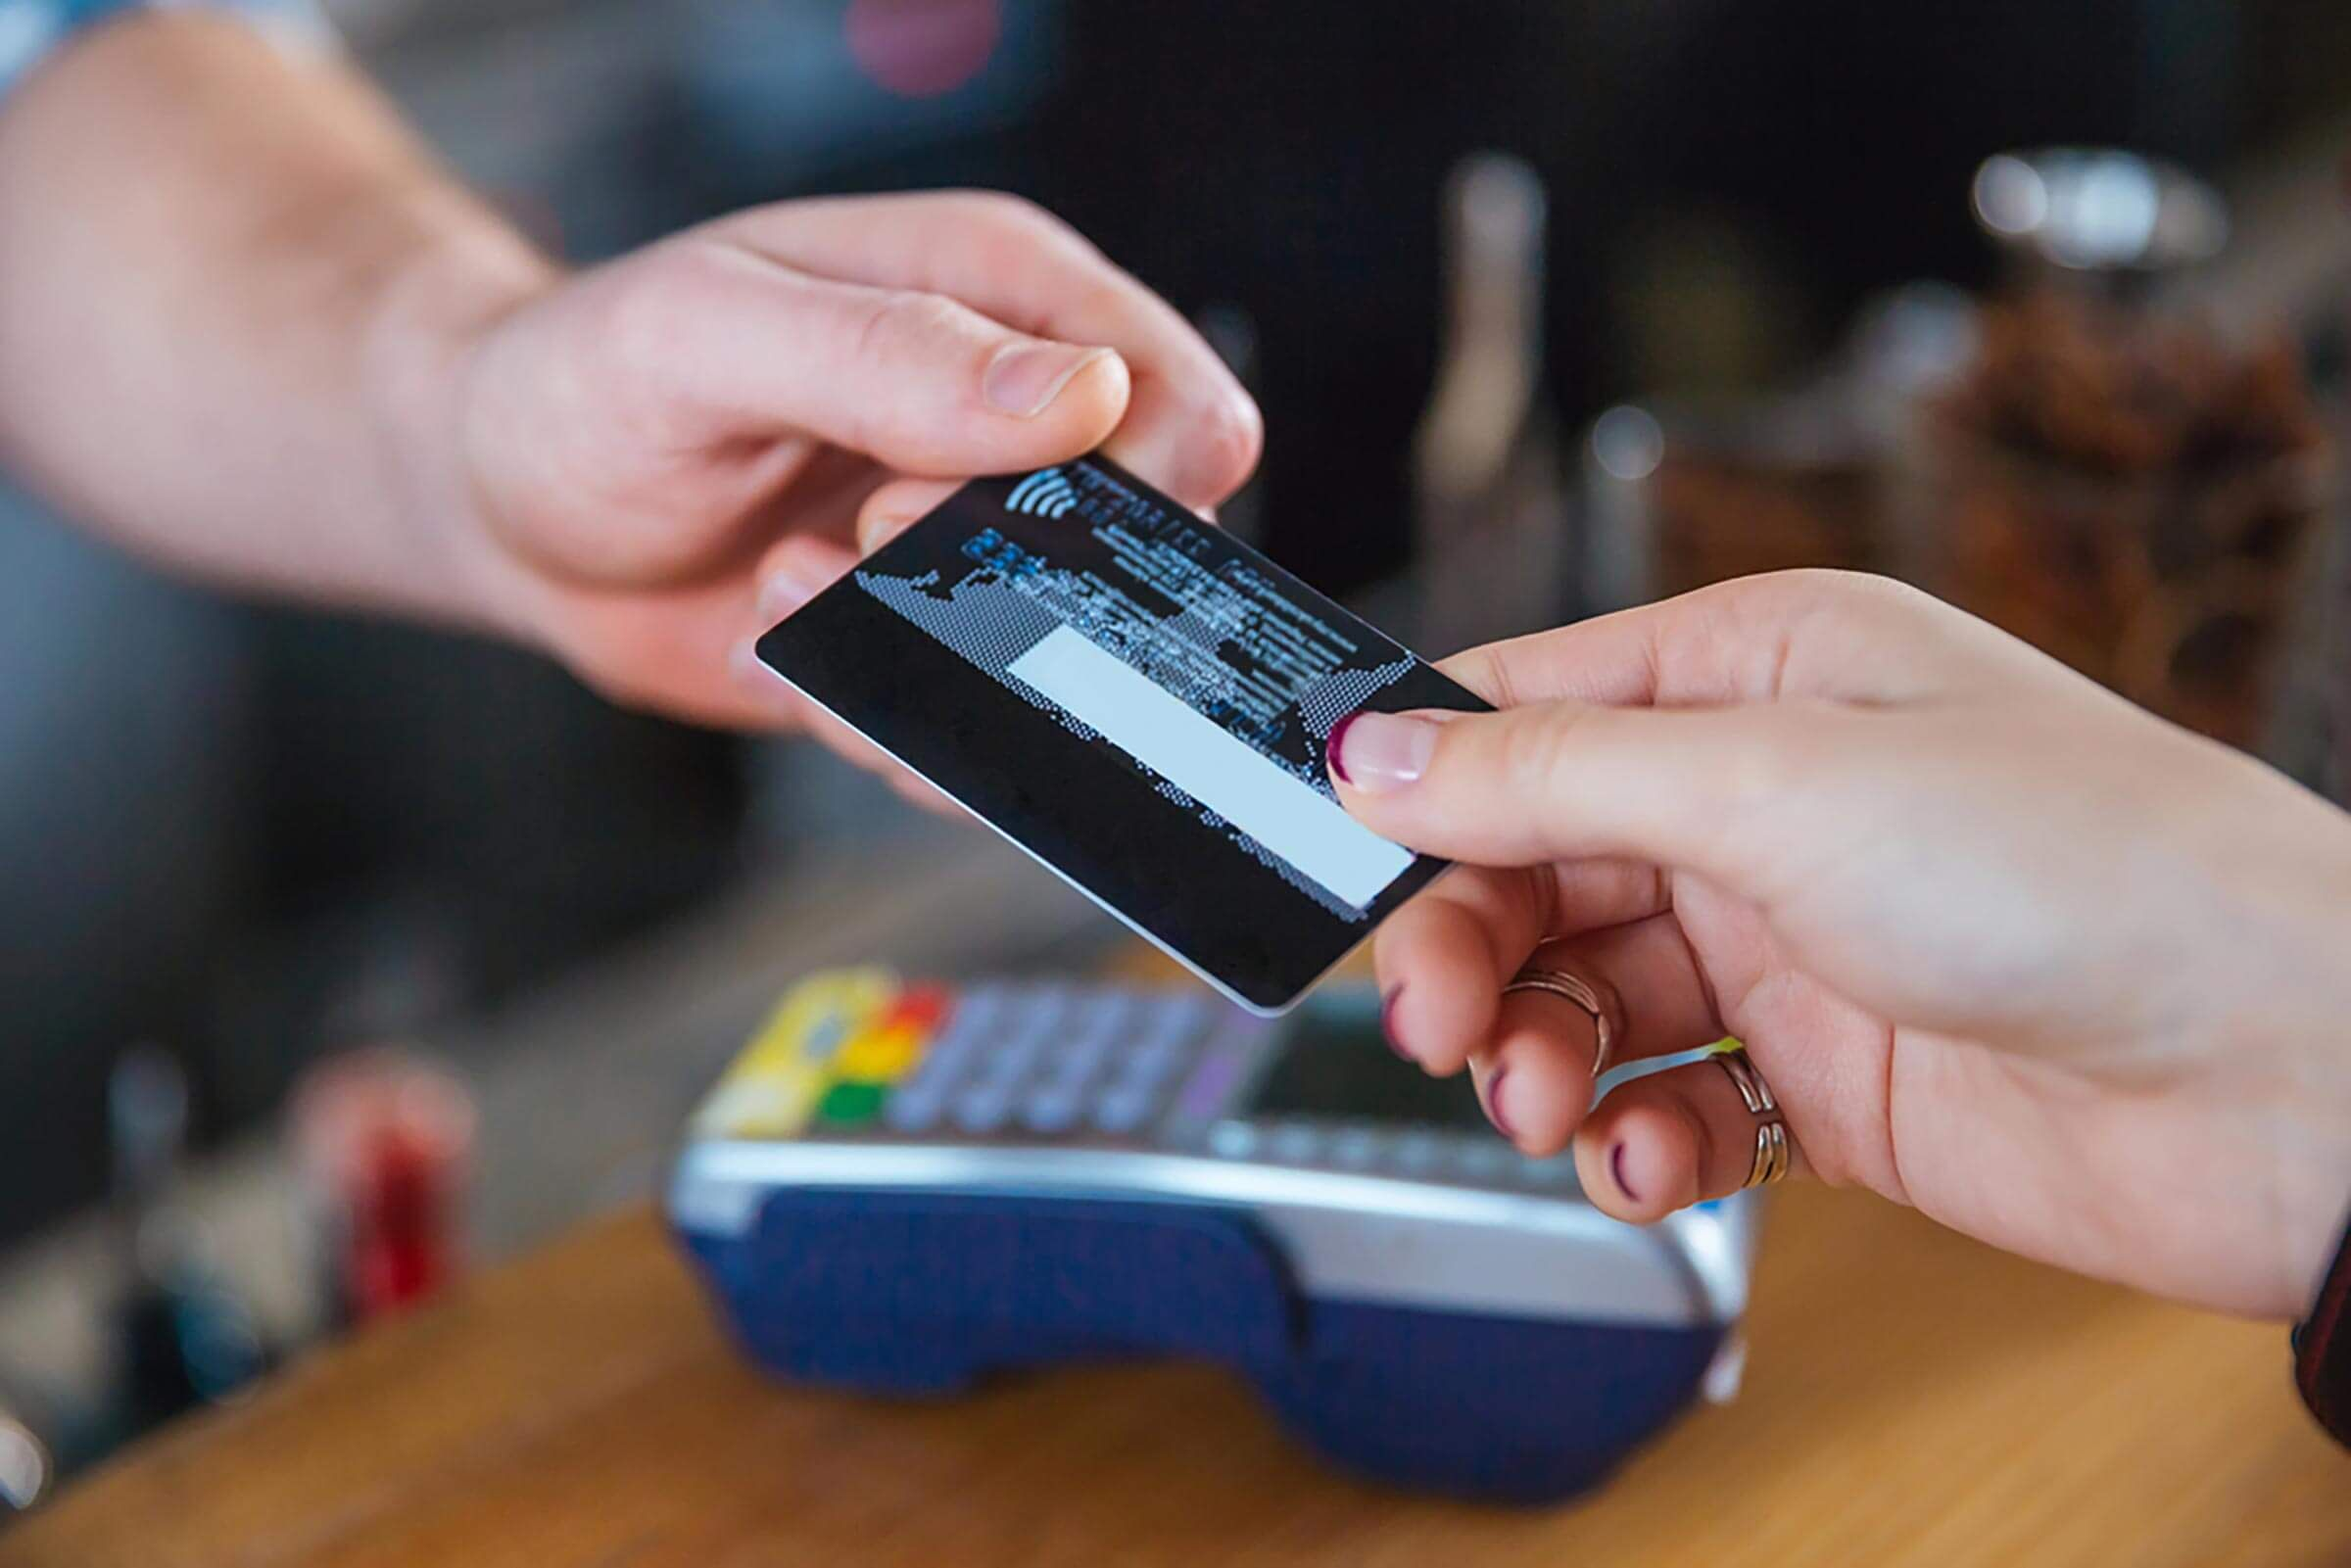 13 Things Credit Card Companies Know About You Bank card